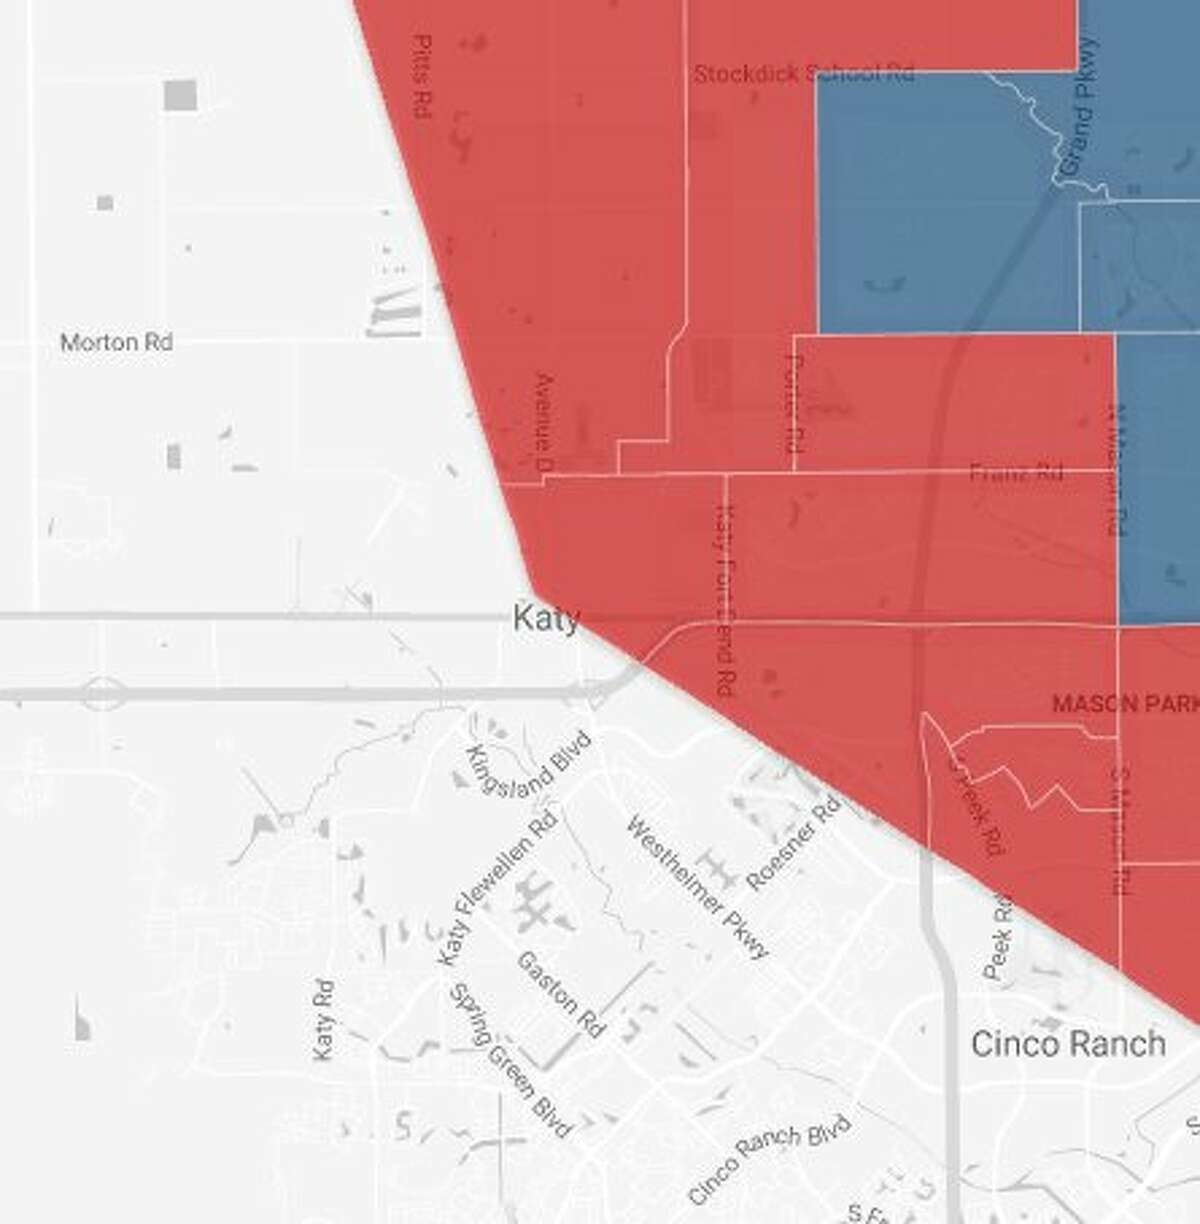 The map shows the Harris County part of the Katy area, which went red (Republican) in the 2016 presidential election in the neighborhoods close to the city of Katy and blue (Democratic) in the neighborhoods farther away from the city.